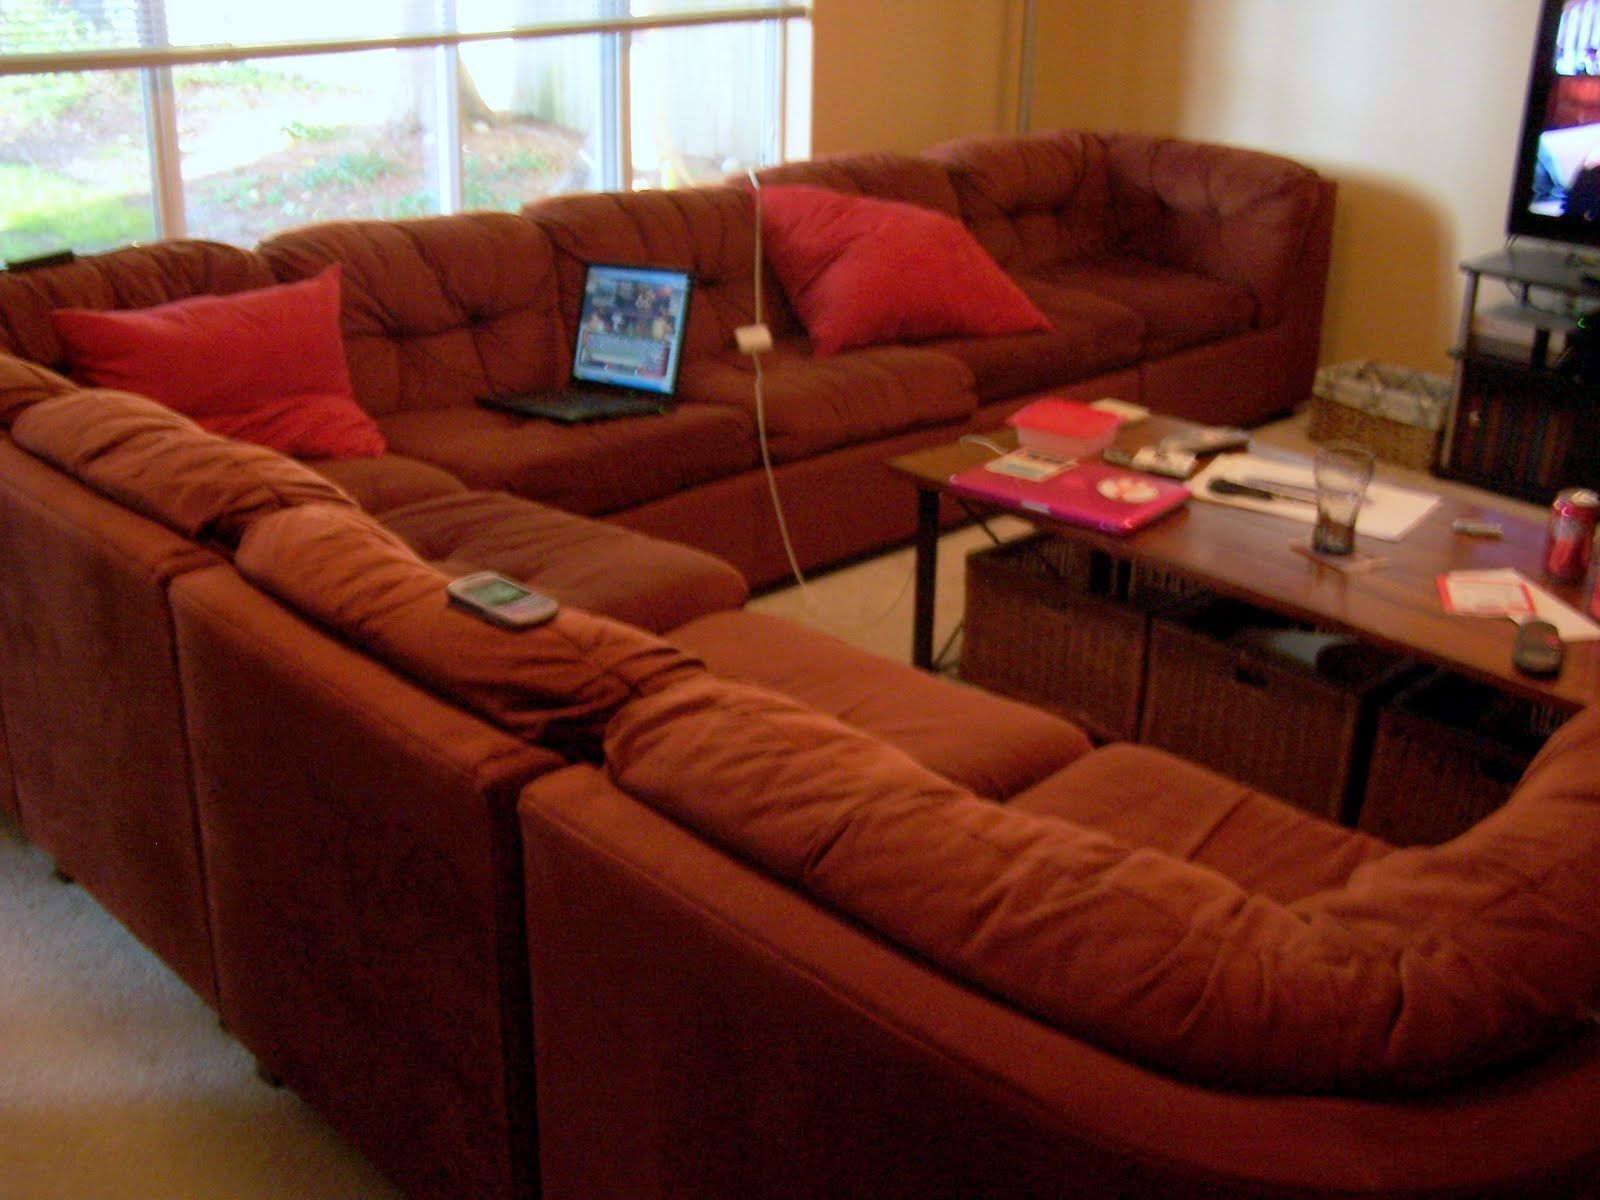 Craigslist Sectional Sofa Sectional Sofa Sofa Inspiration Bedroom Furniture For Sale